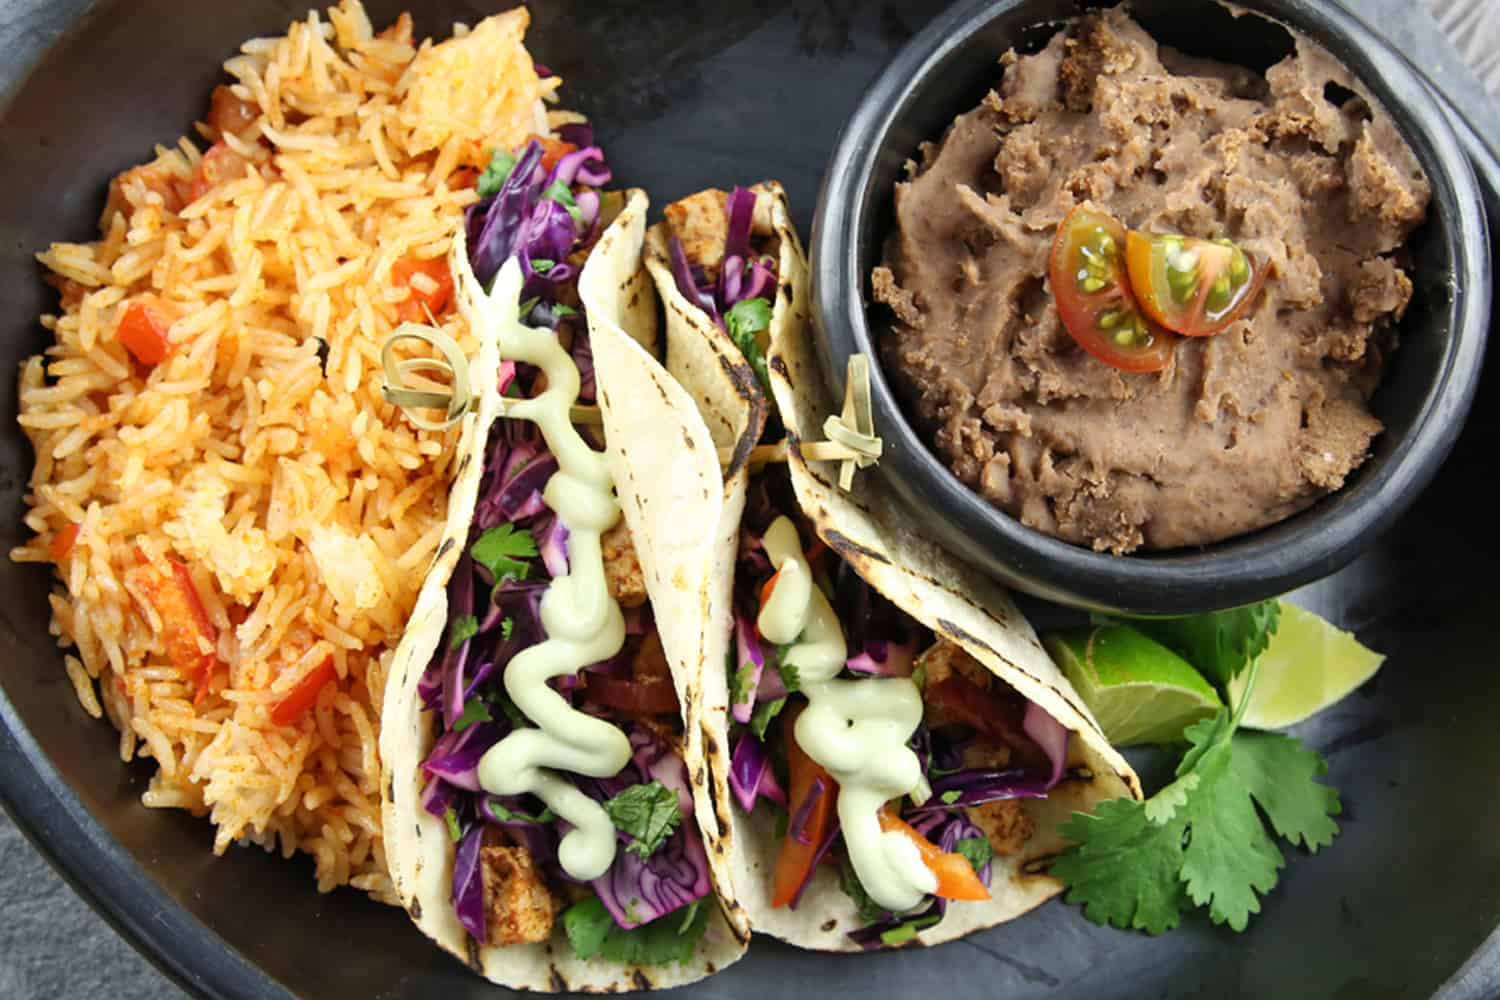 Vegetarian and Vegan Options, Corporate Dining Food Service, Cafe Plate